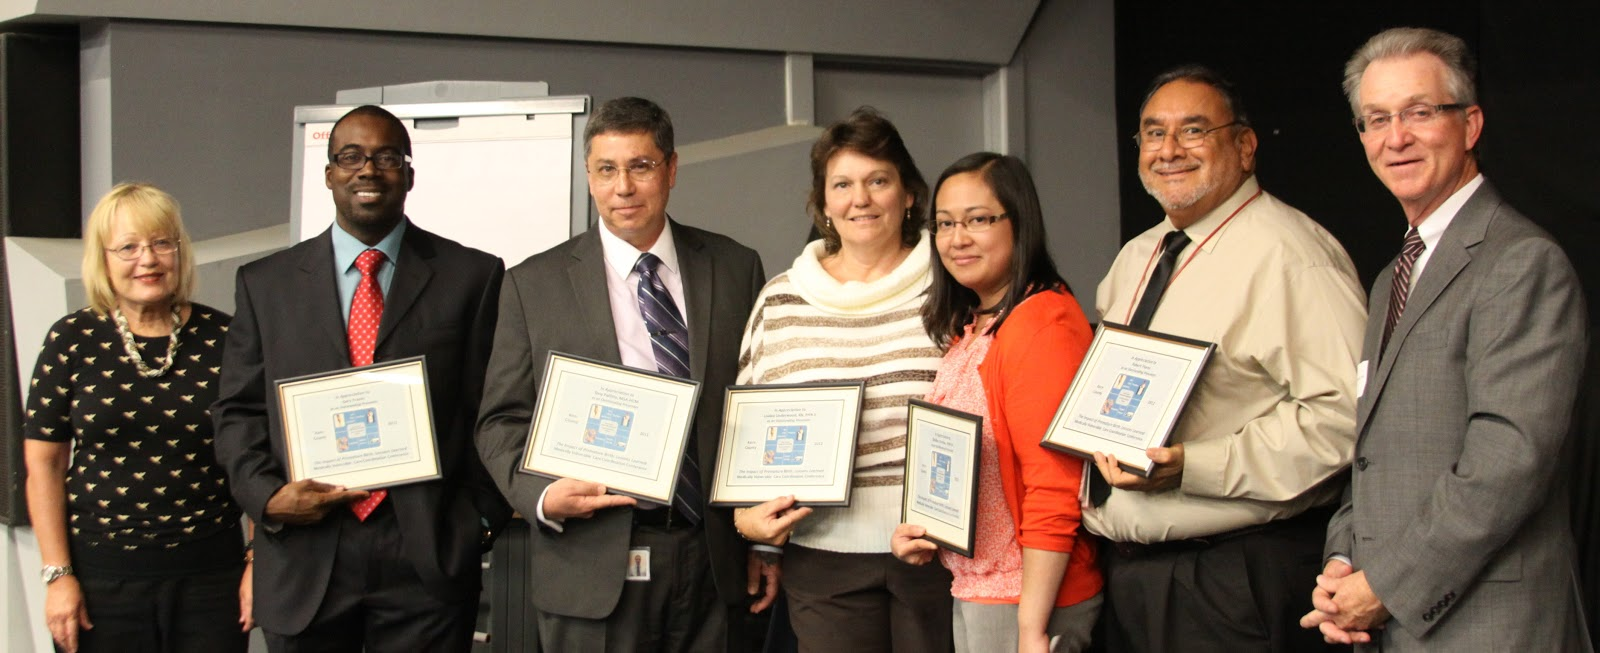 Kern County Medically Vulnerable Care Coordination Project